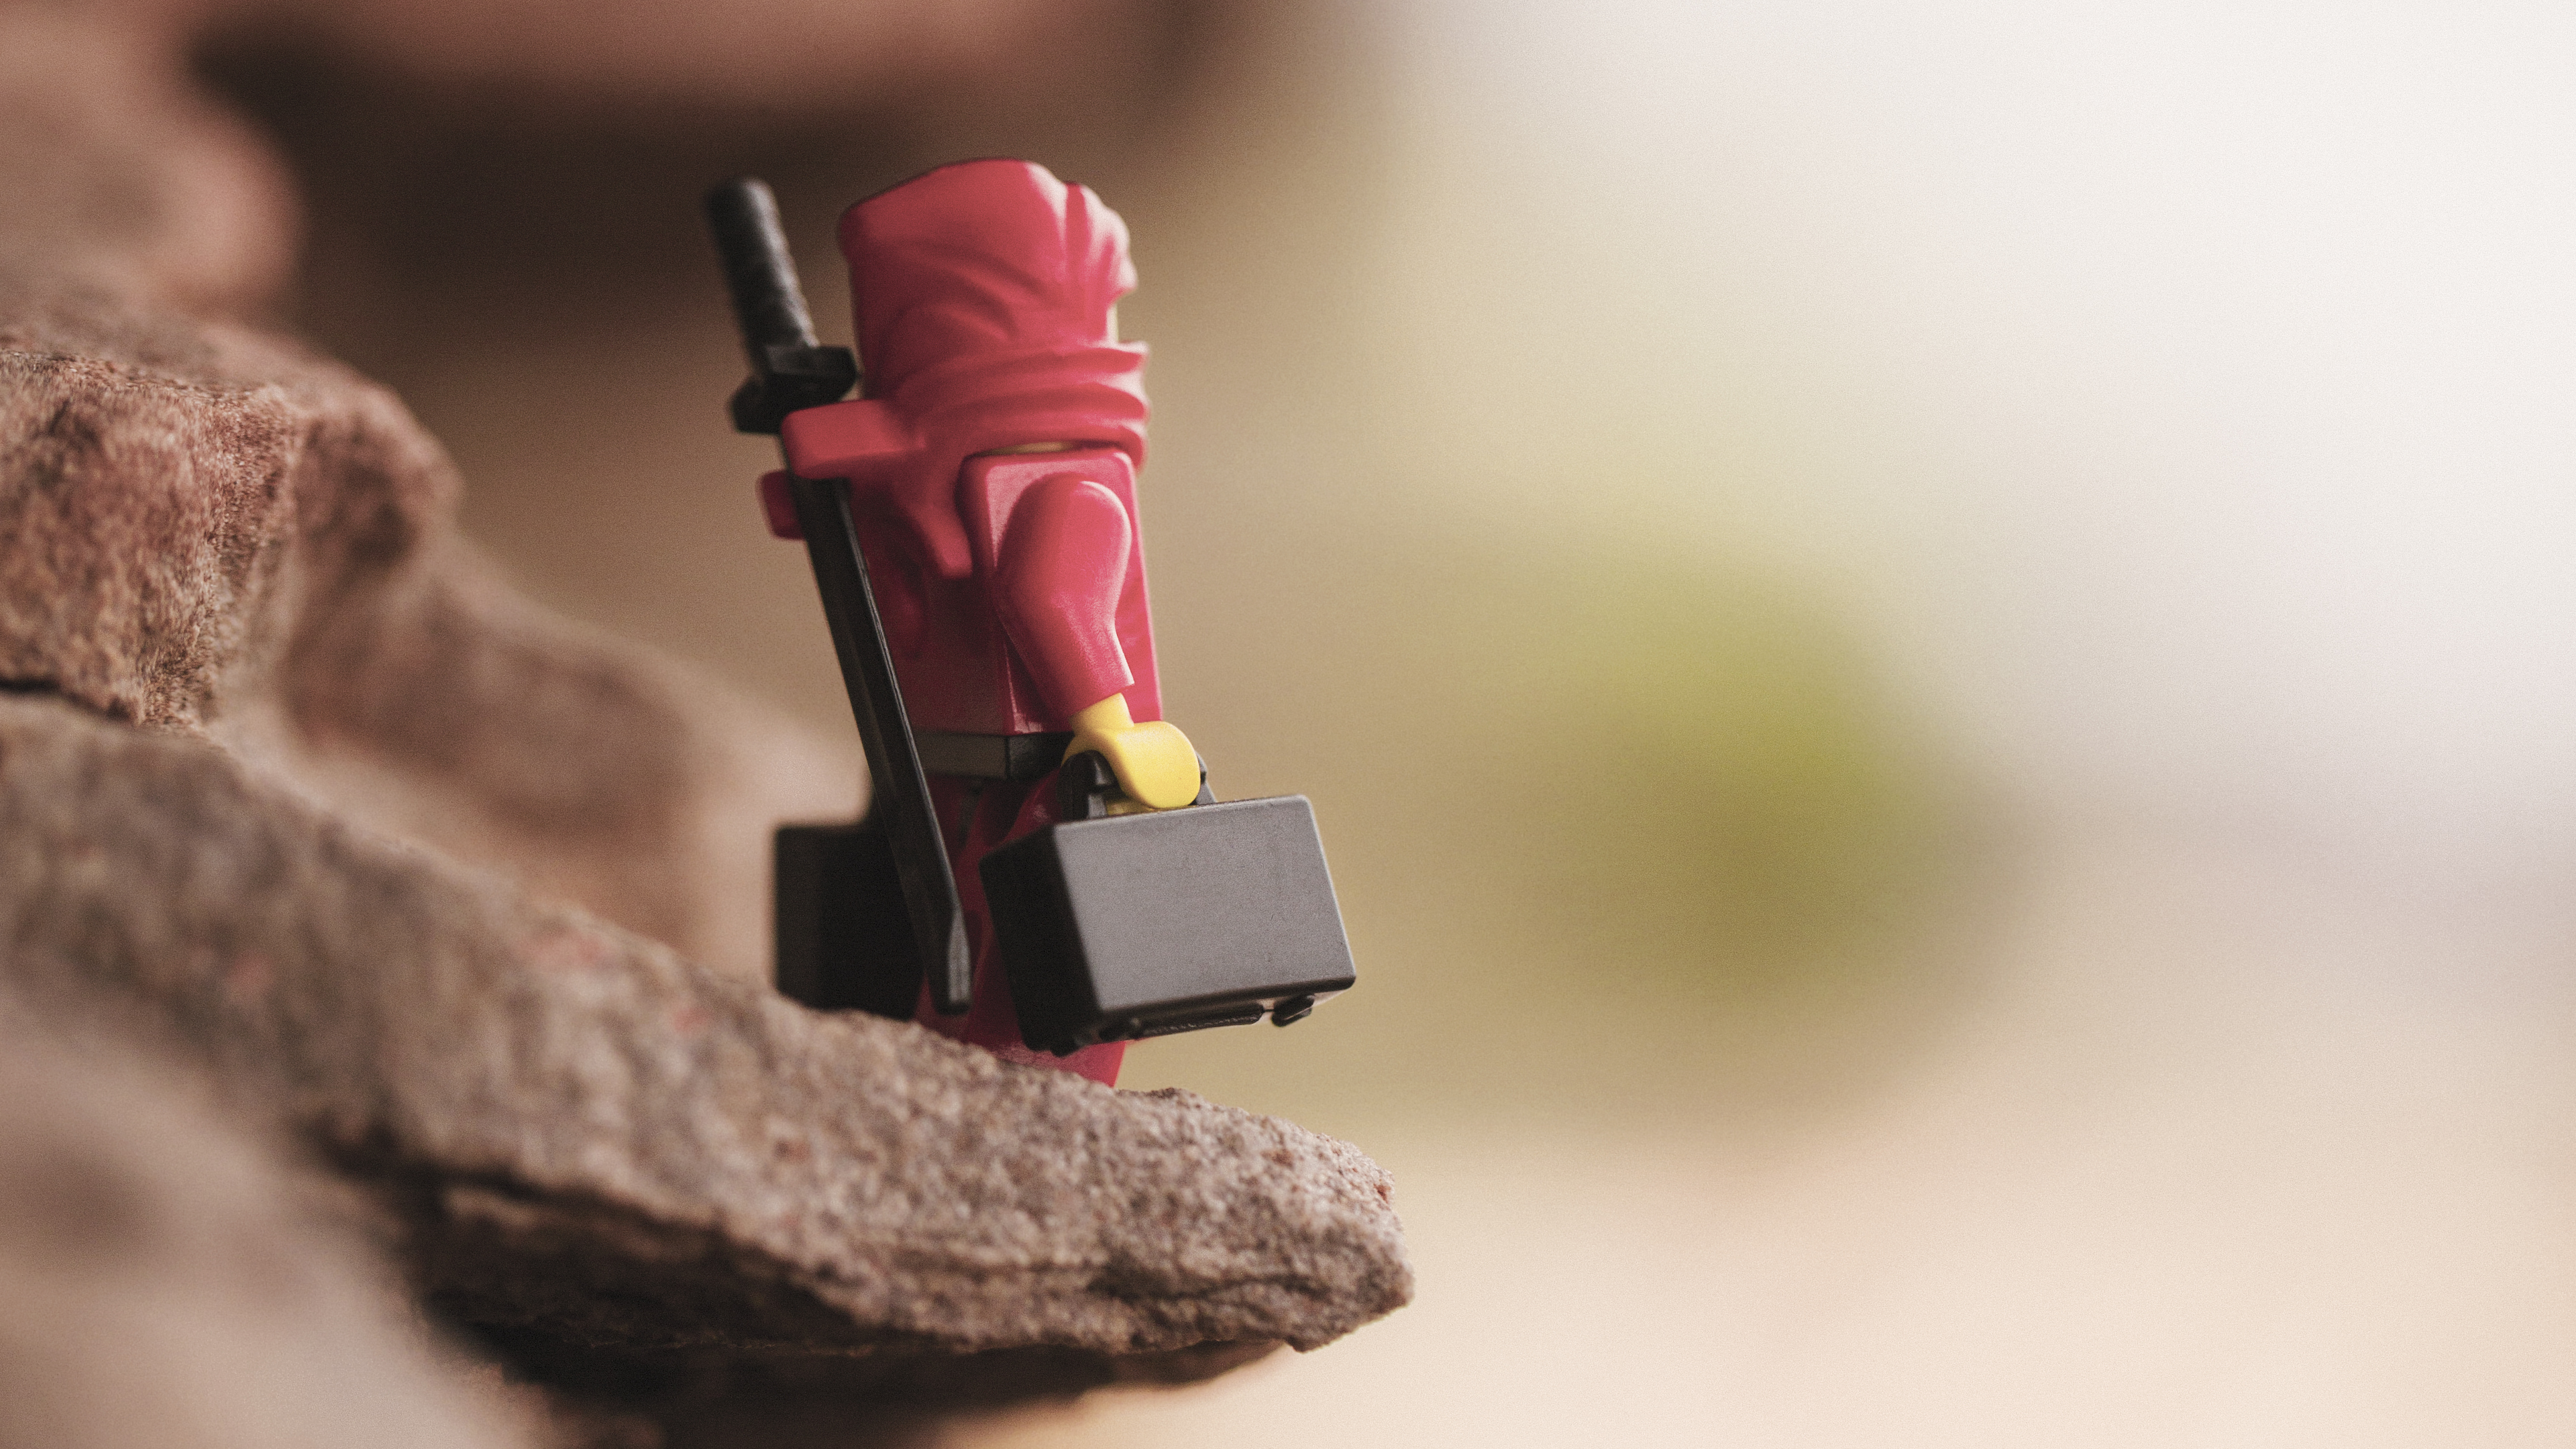 A Lego Ninja stands on the edge of a cliff holding two suitcases wondering where he should go.